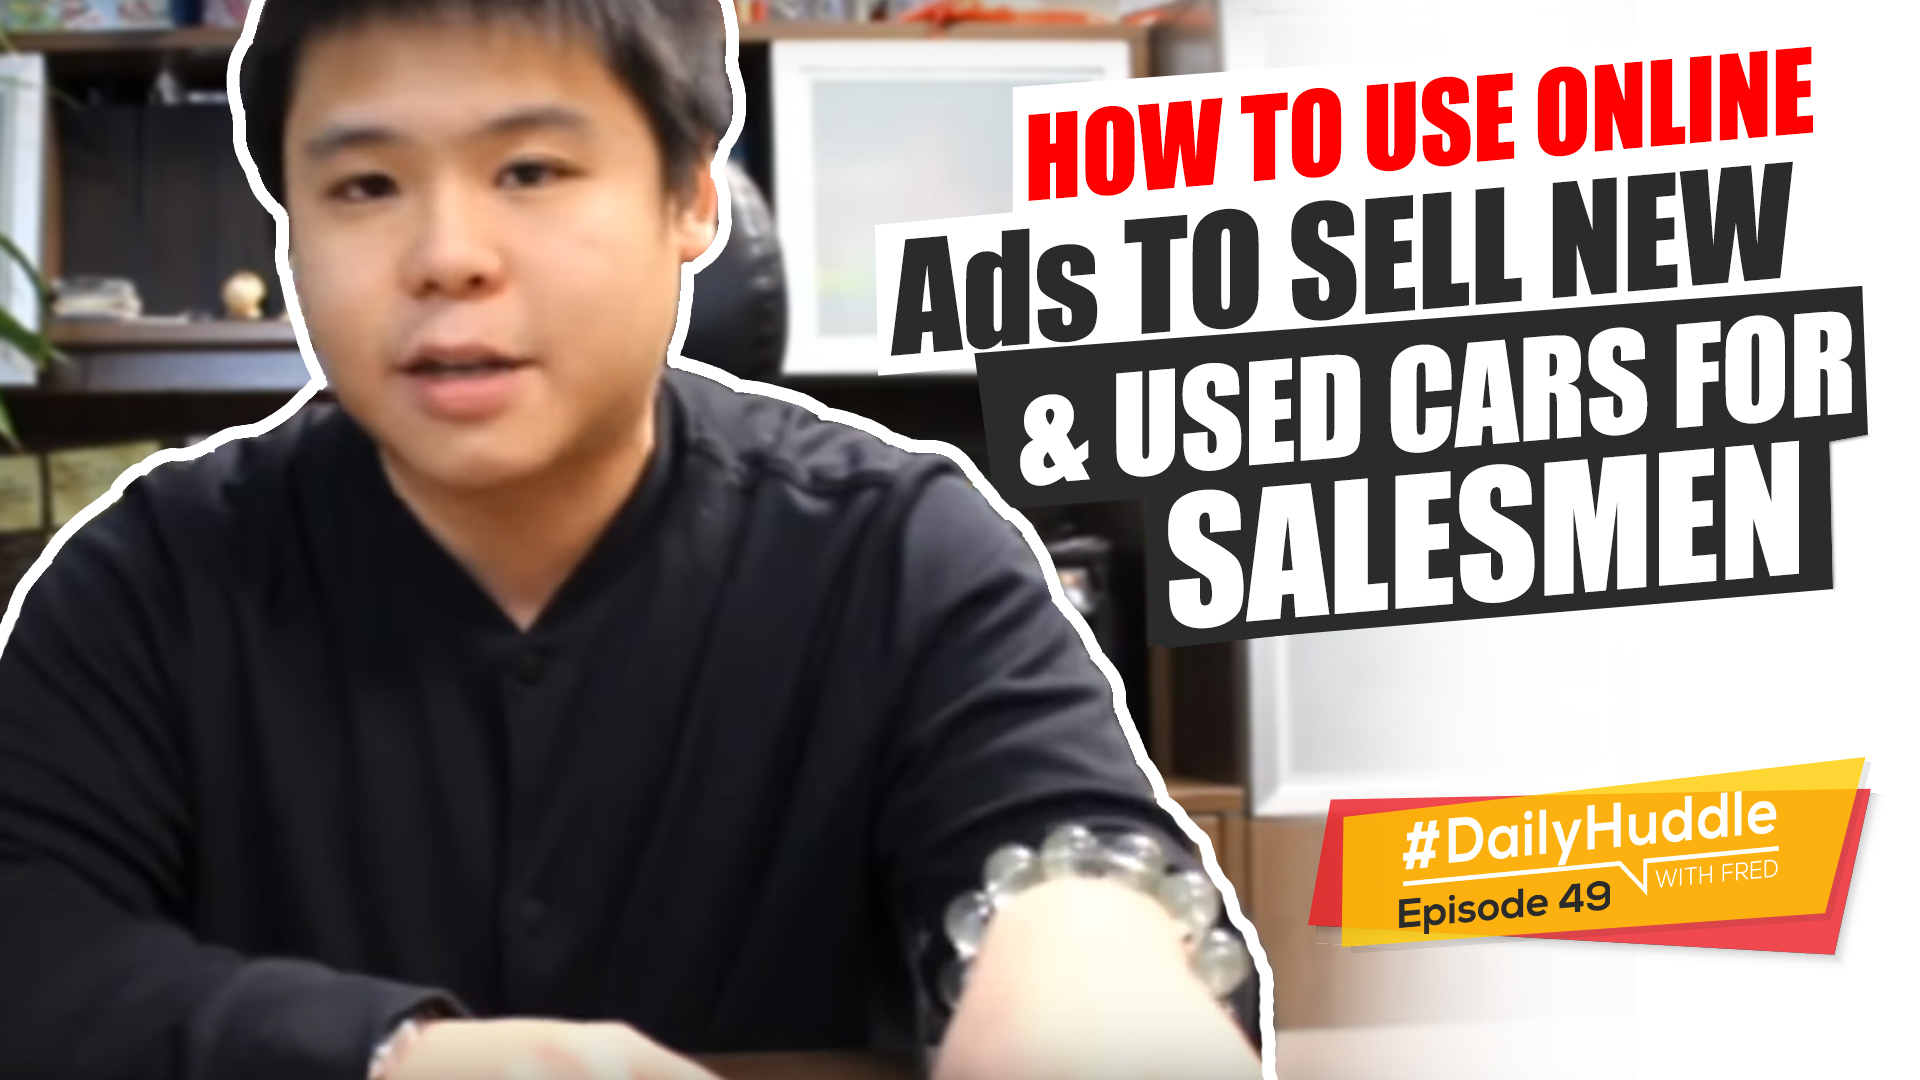 Daily Huddle - Ep 49 | How To Use Online Ads To Sell New & Used Cars For Salesmen